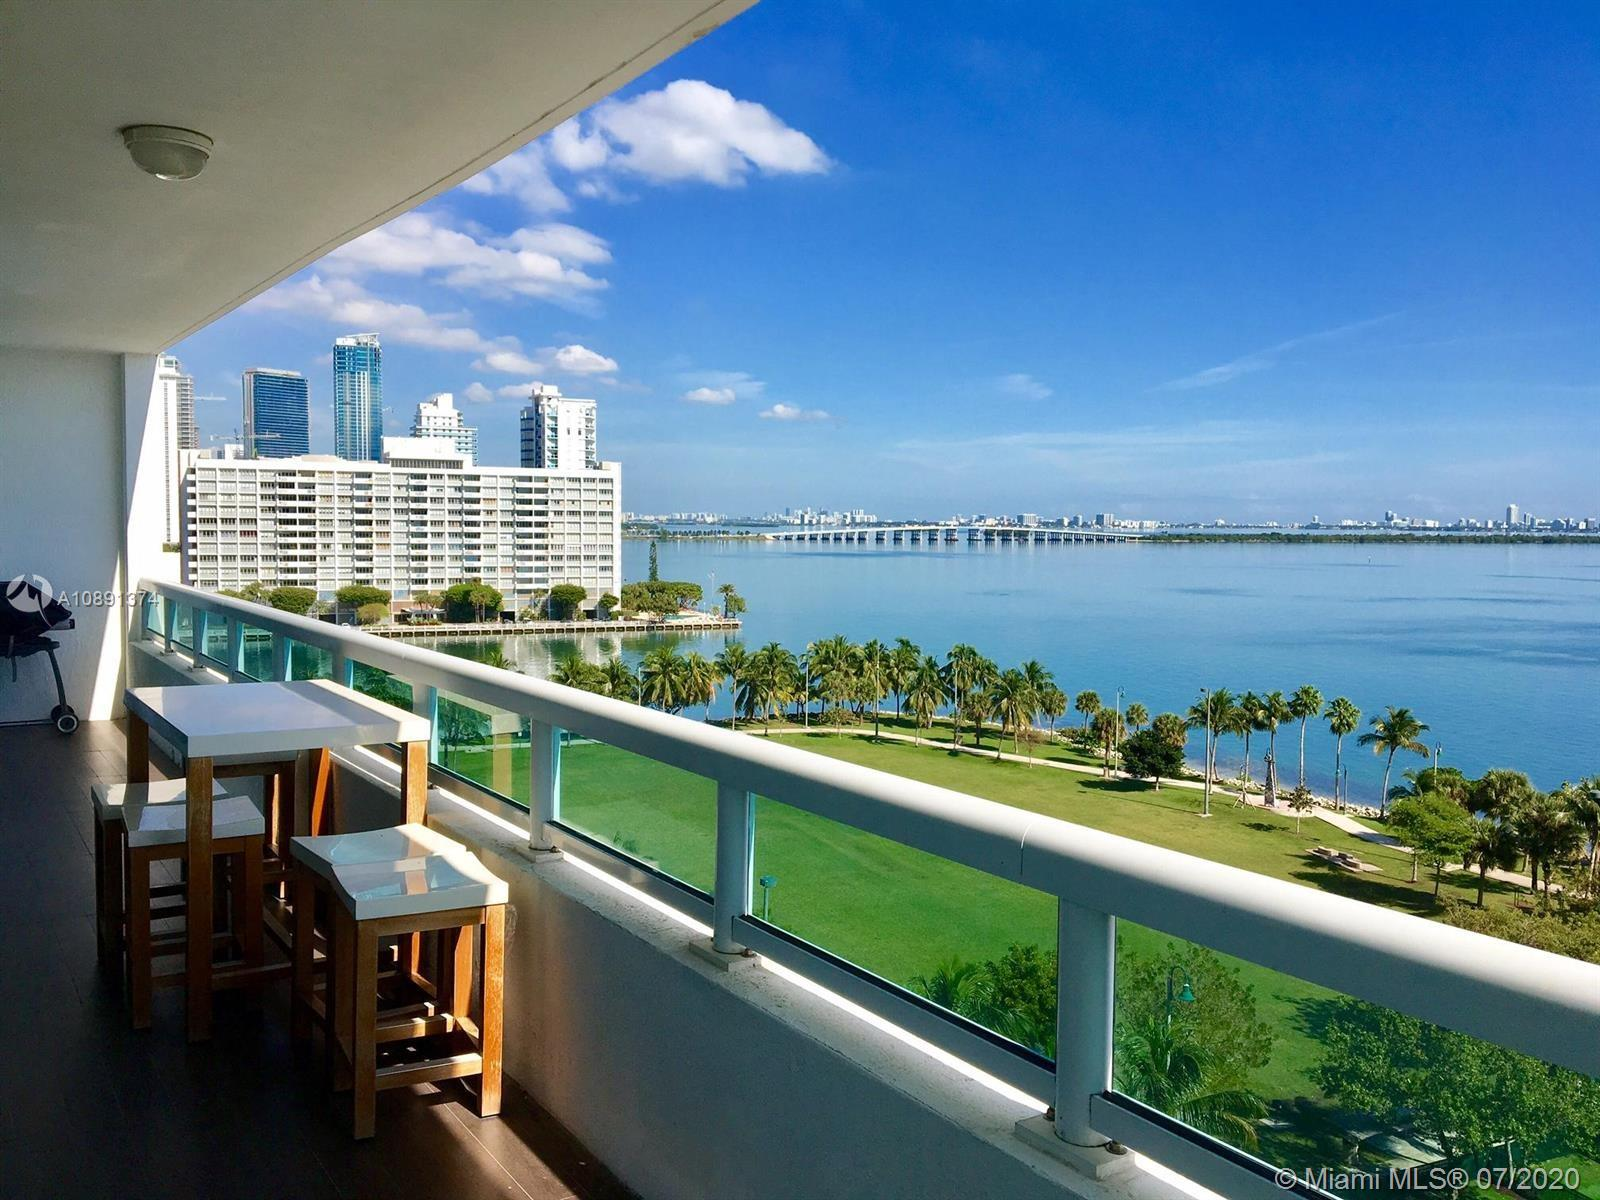 BUY WITH AS LITTLE AS 5% DOWN!!!!SPECTACULAR DIRECT EAST BAY VIEWS FROM THIS UNIT LOCATED IN EAST EDGEWATER.OPEN KITCHEN.SPLIT BEDROOMS.FLOOR TO CEILING WINDOWS IN LIV/DIN AREA & BOTH BEDROOMS.TILE & MARBLE FLOOR.1222 OF AC SPACE + 252 SQFT TERRACE.VERY LOW HOA OF ONLY $610 WHICH INCLUDES CABLE, HIGH SPEED INTERNET,A FULL AMENITIES BUILDING W/ VALET,DOORMAN, CONCIERGE,POOL/GYM ATTENDANT, IN HOUSE MANAGEMENT OFFICE AND OVER 5 MILLION DOLLARS IN RESERVES.WALK TO PARK, CAFES, NIGHTLIFE, PUBLIX, BANKS & SO MUCH MORE.5 MINUTES TO ALL THAT IS HAPPENING IN NEW URBAN MIAMI INCLUDING SOUTH BEACH, DOWNTOWN, BRICKELL, AAA, PERFORMING ARTS CENTER, THE PORT & HEALTH DISTRICT.EASY ACCESS TO ALL MAJOR HIGHWAYS. VERY EASY TO SHOW.